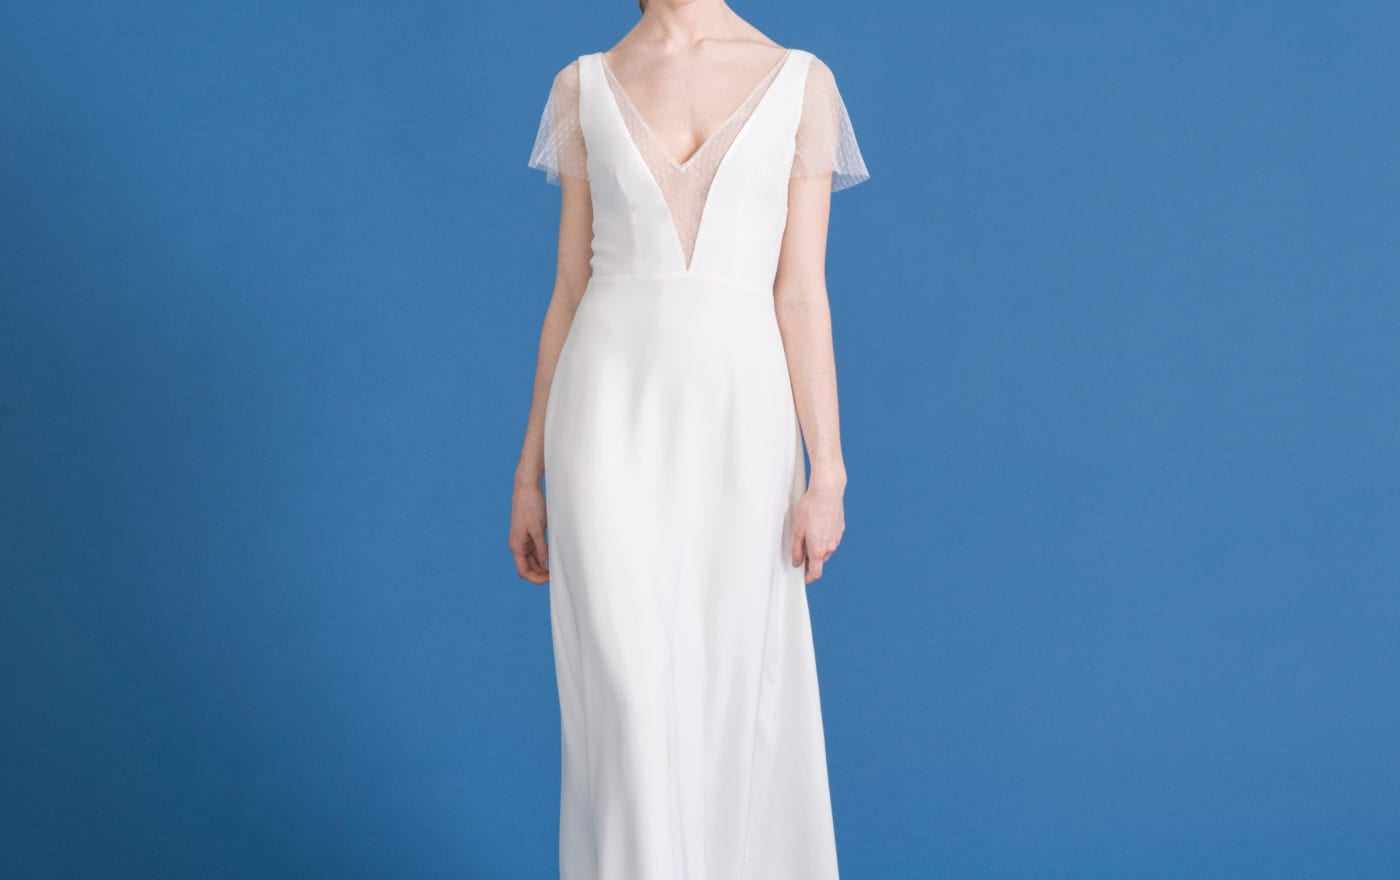 deep v neck wedding dress with sheer overlay and cap sleeve